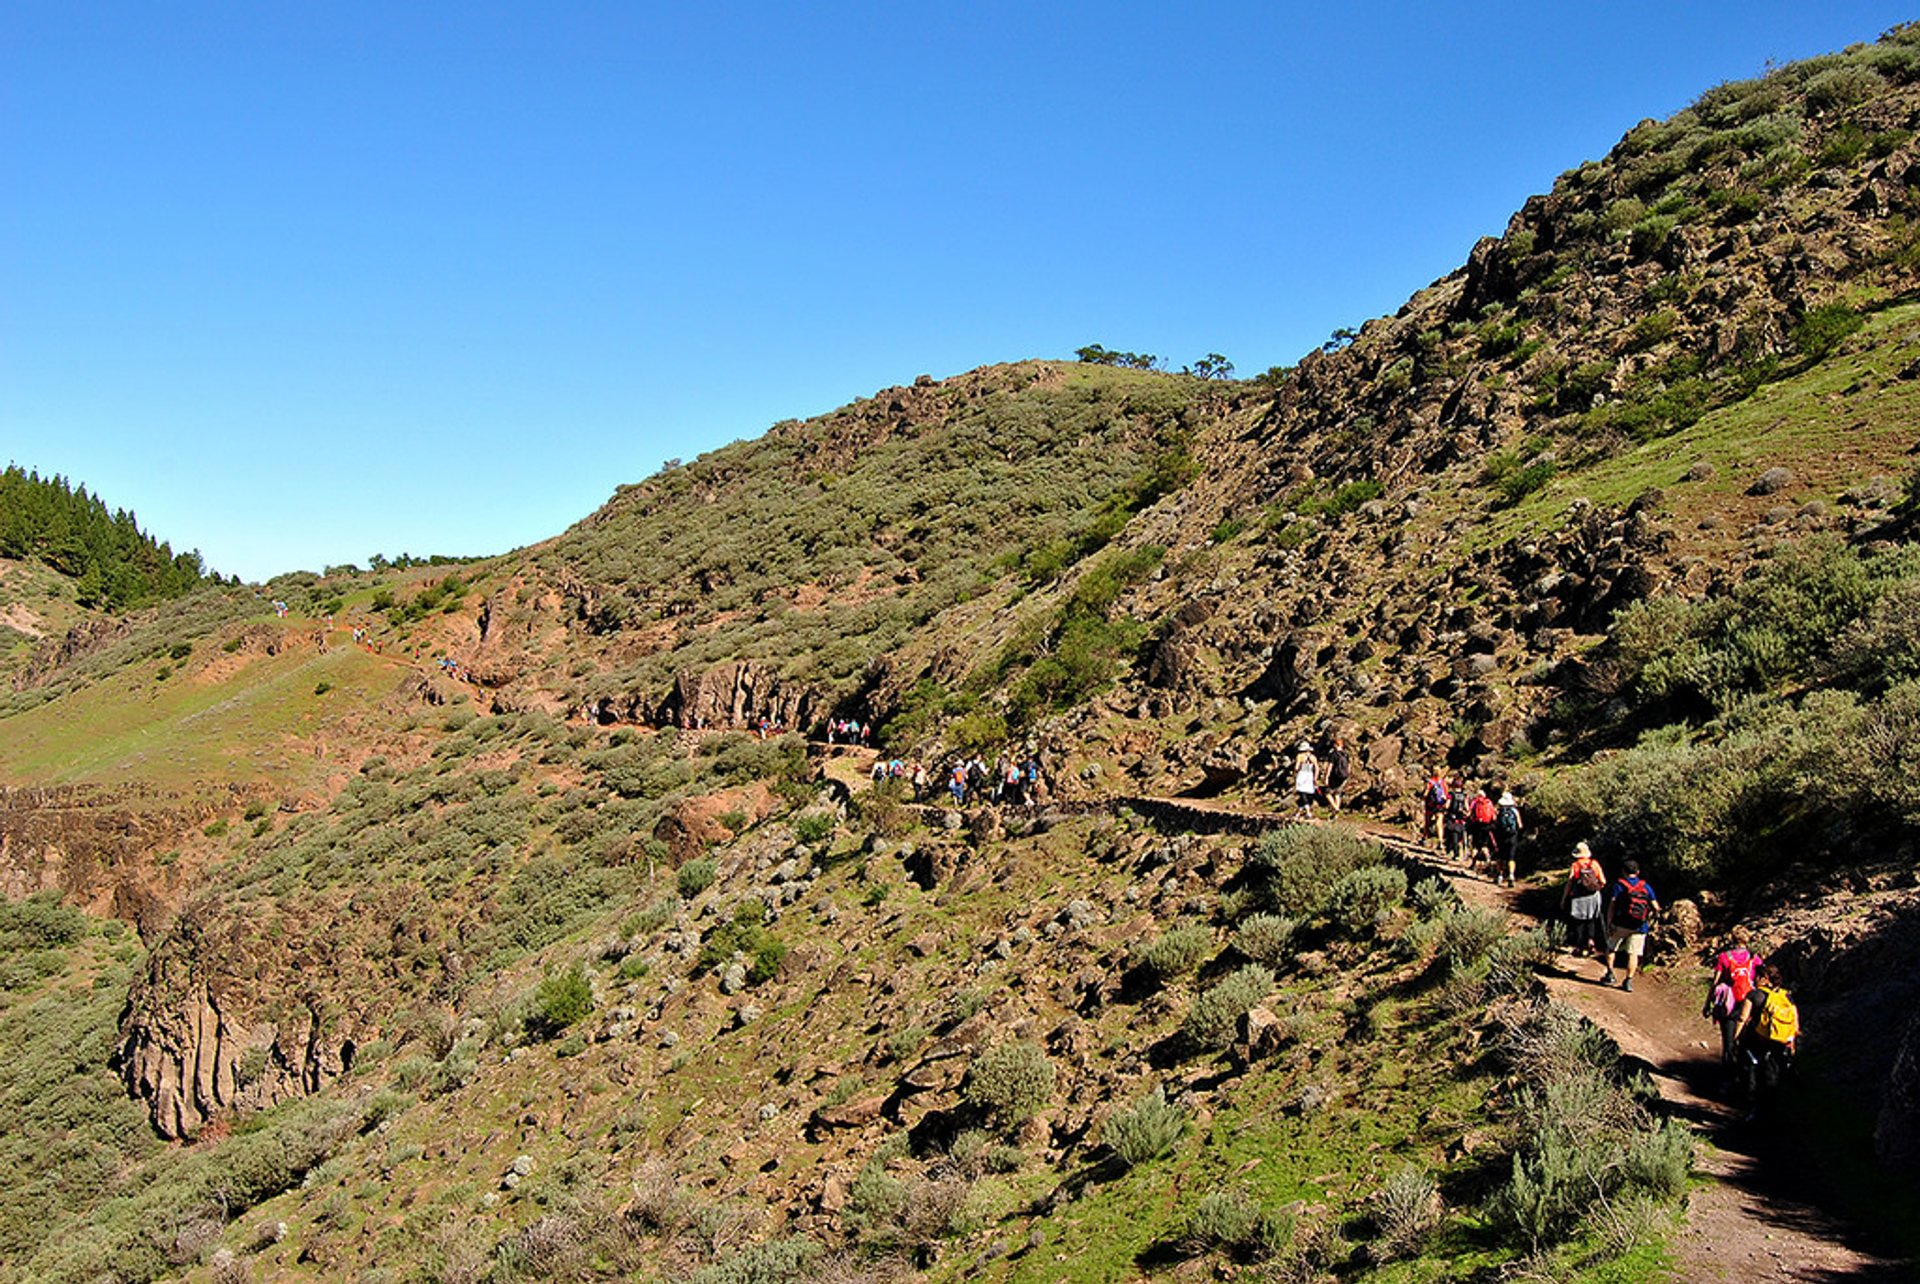 On the way to Roque Nublo, Las Palmas, Spain 2020